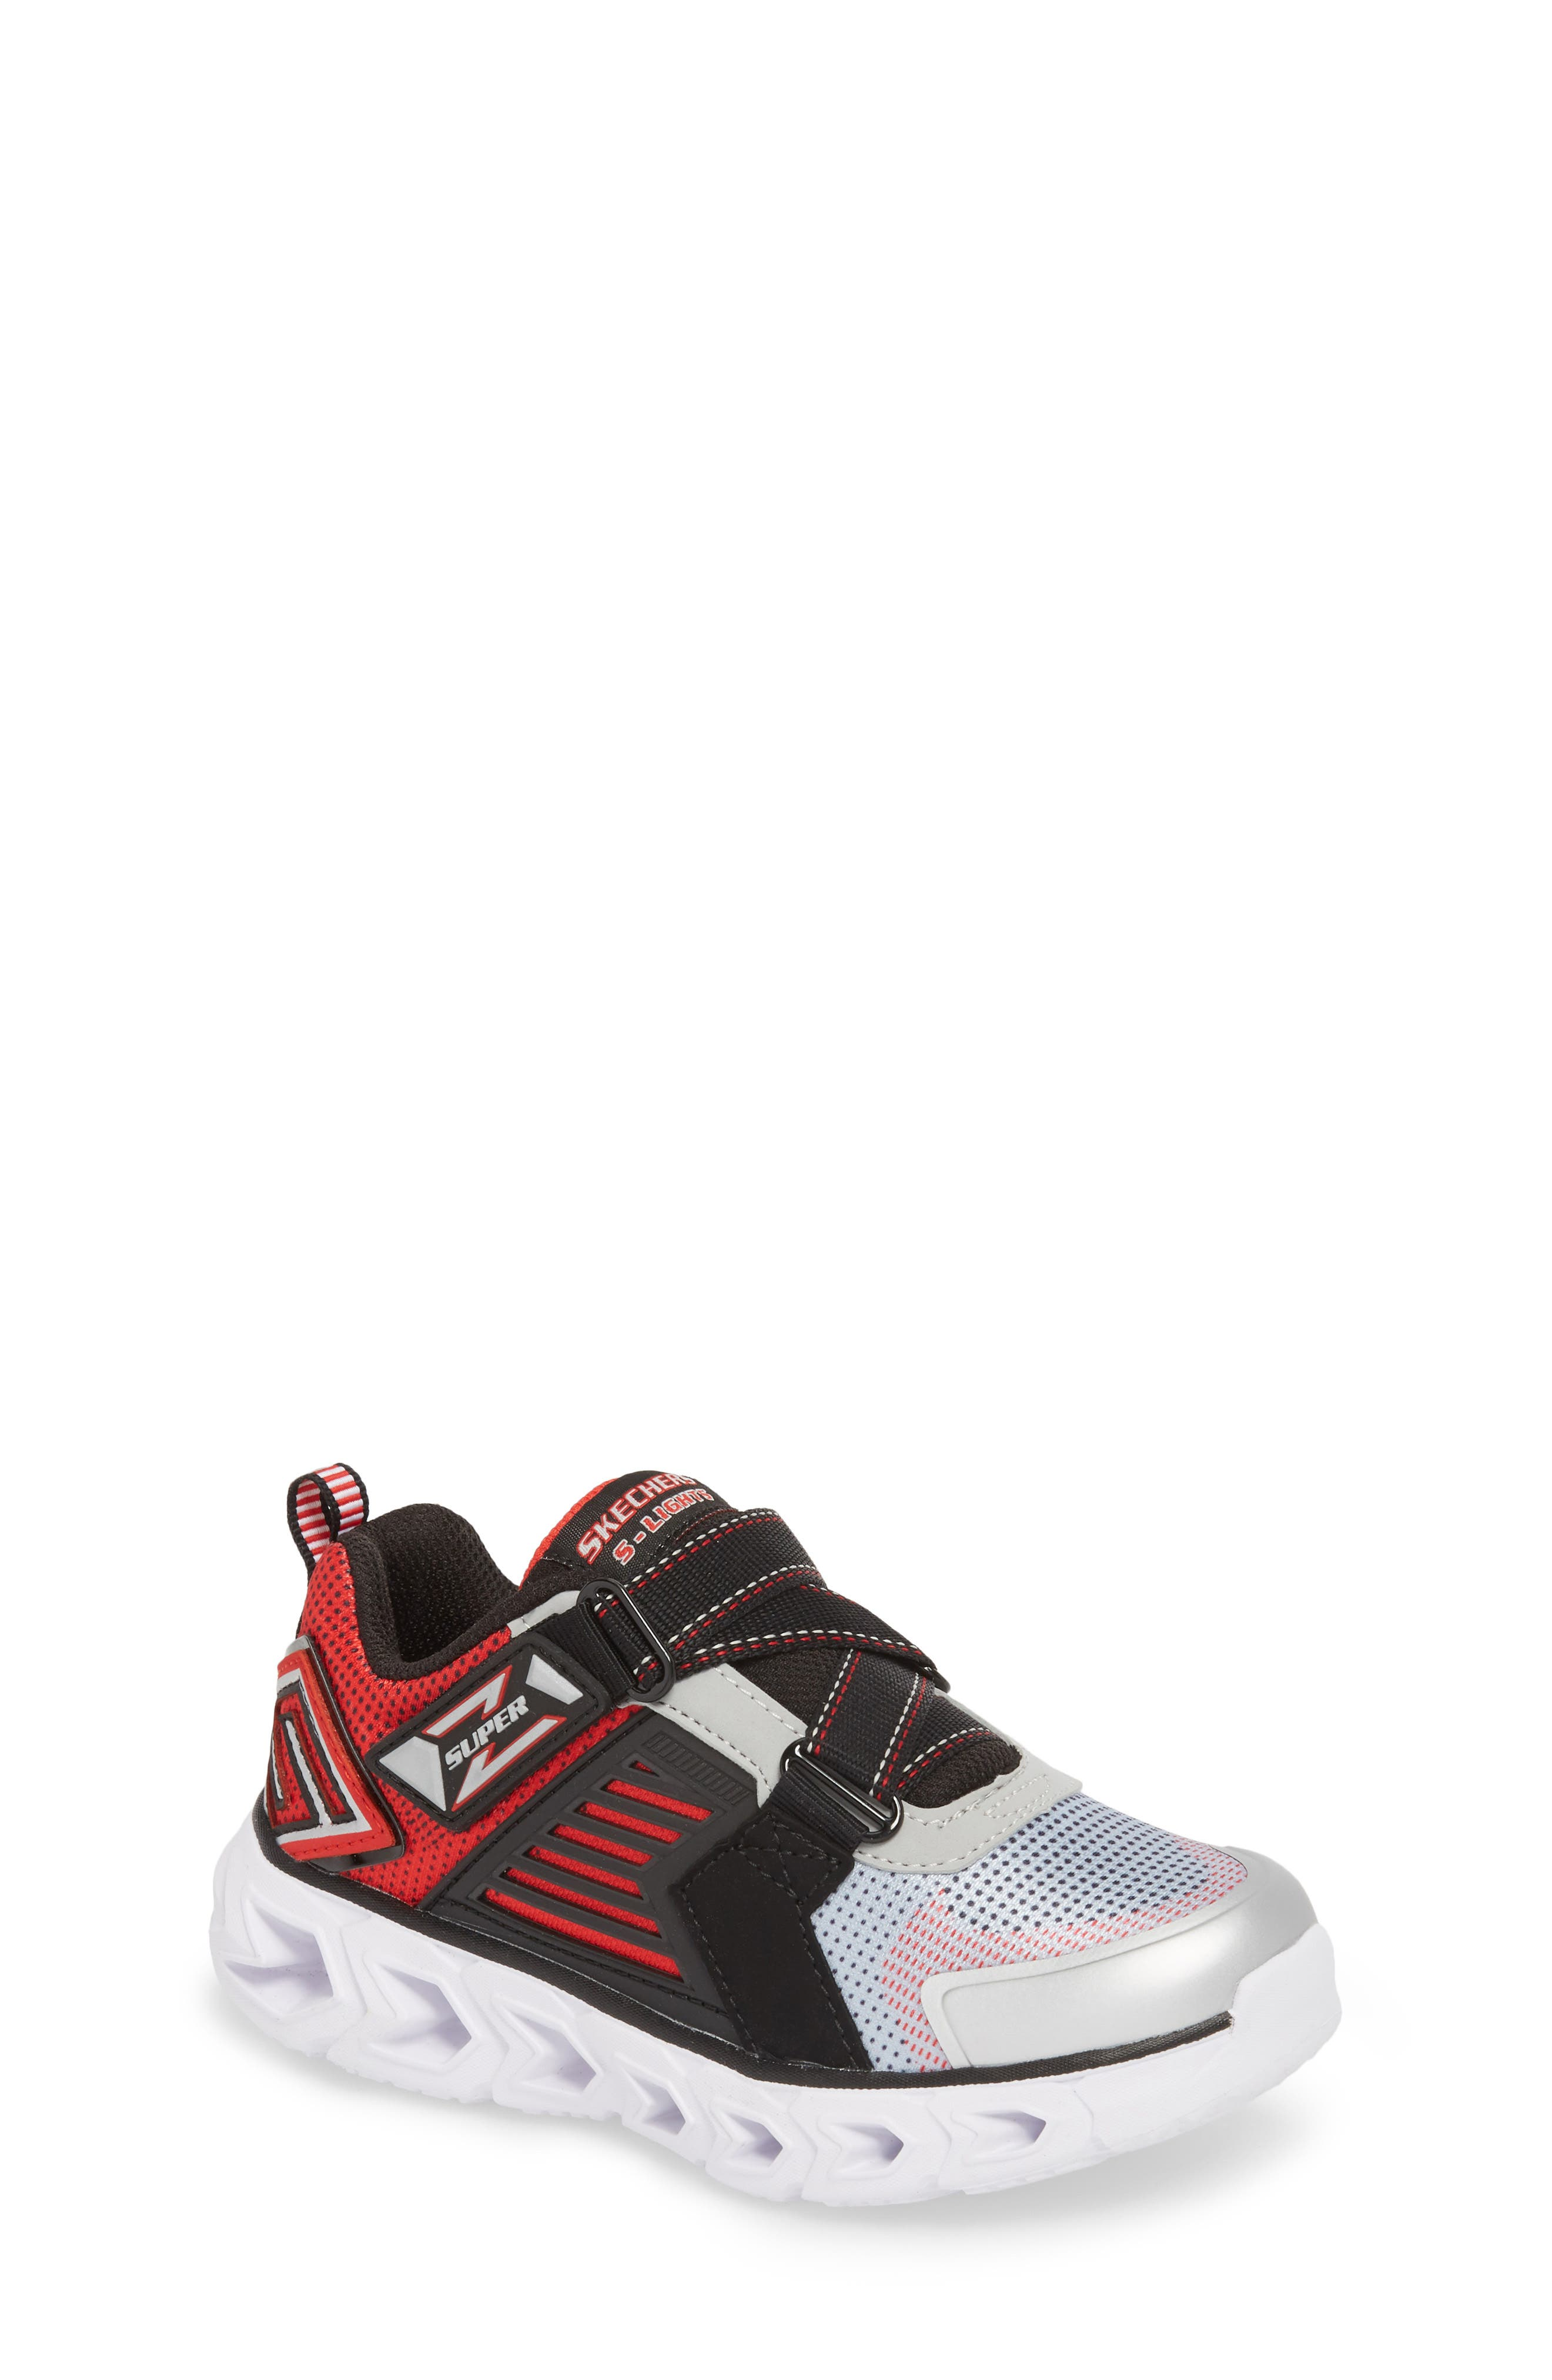 Hypno-Flash 2.0 Rapid Quake Sneakers,                             Main thumbnail 1, color,                             Silver/ Black